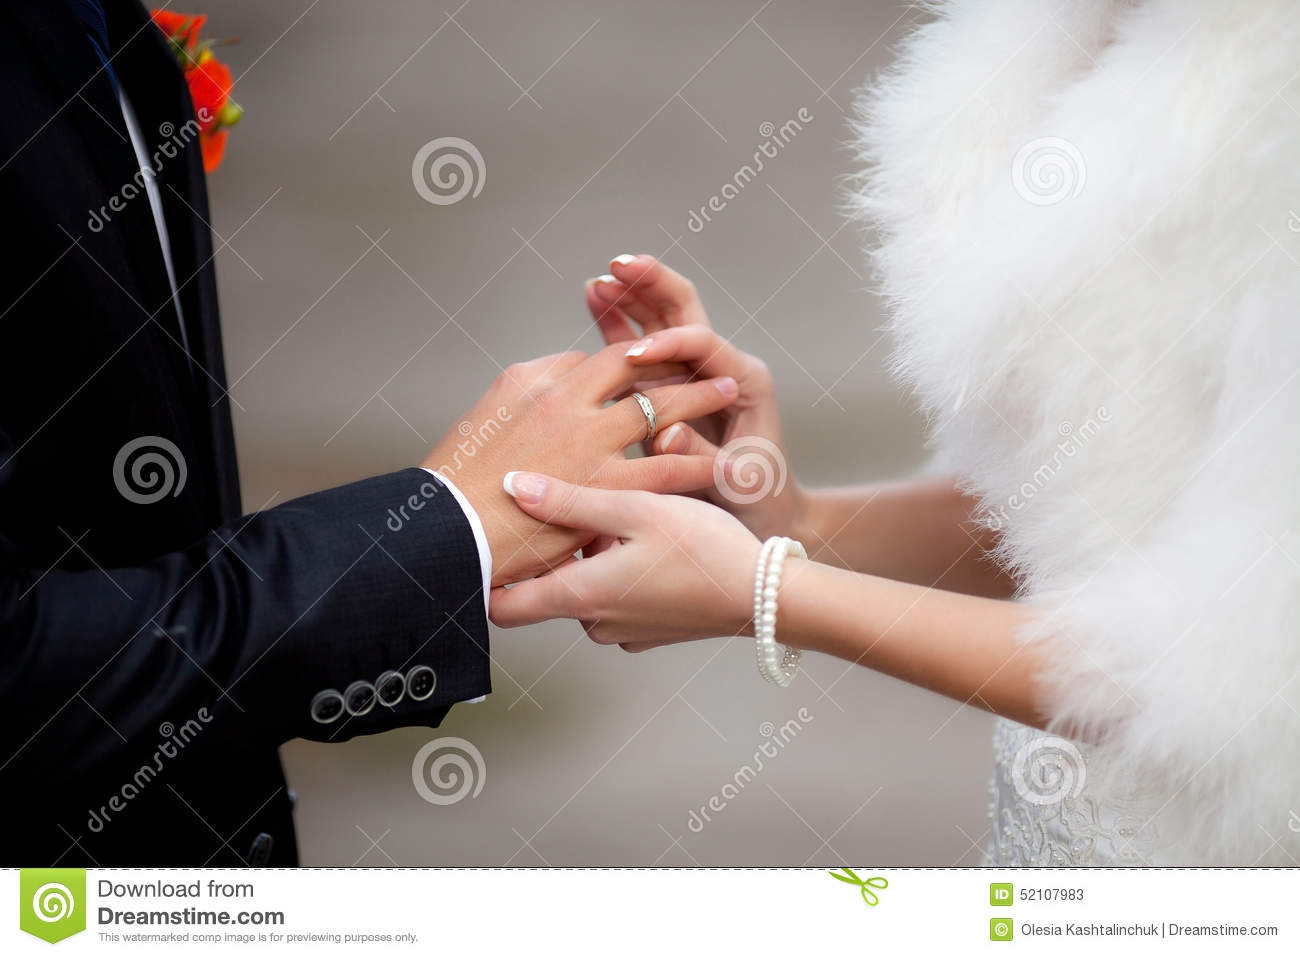 Bride Put The Wedding Ring On Groom Stock Image Image of marry